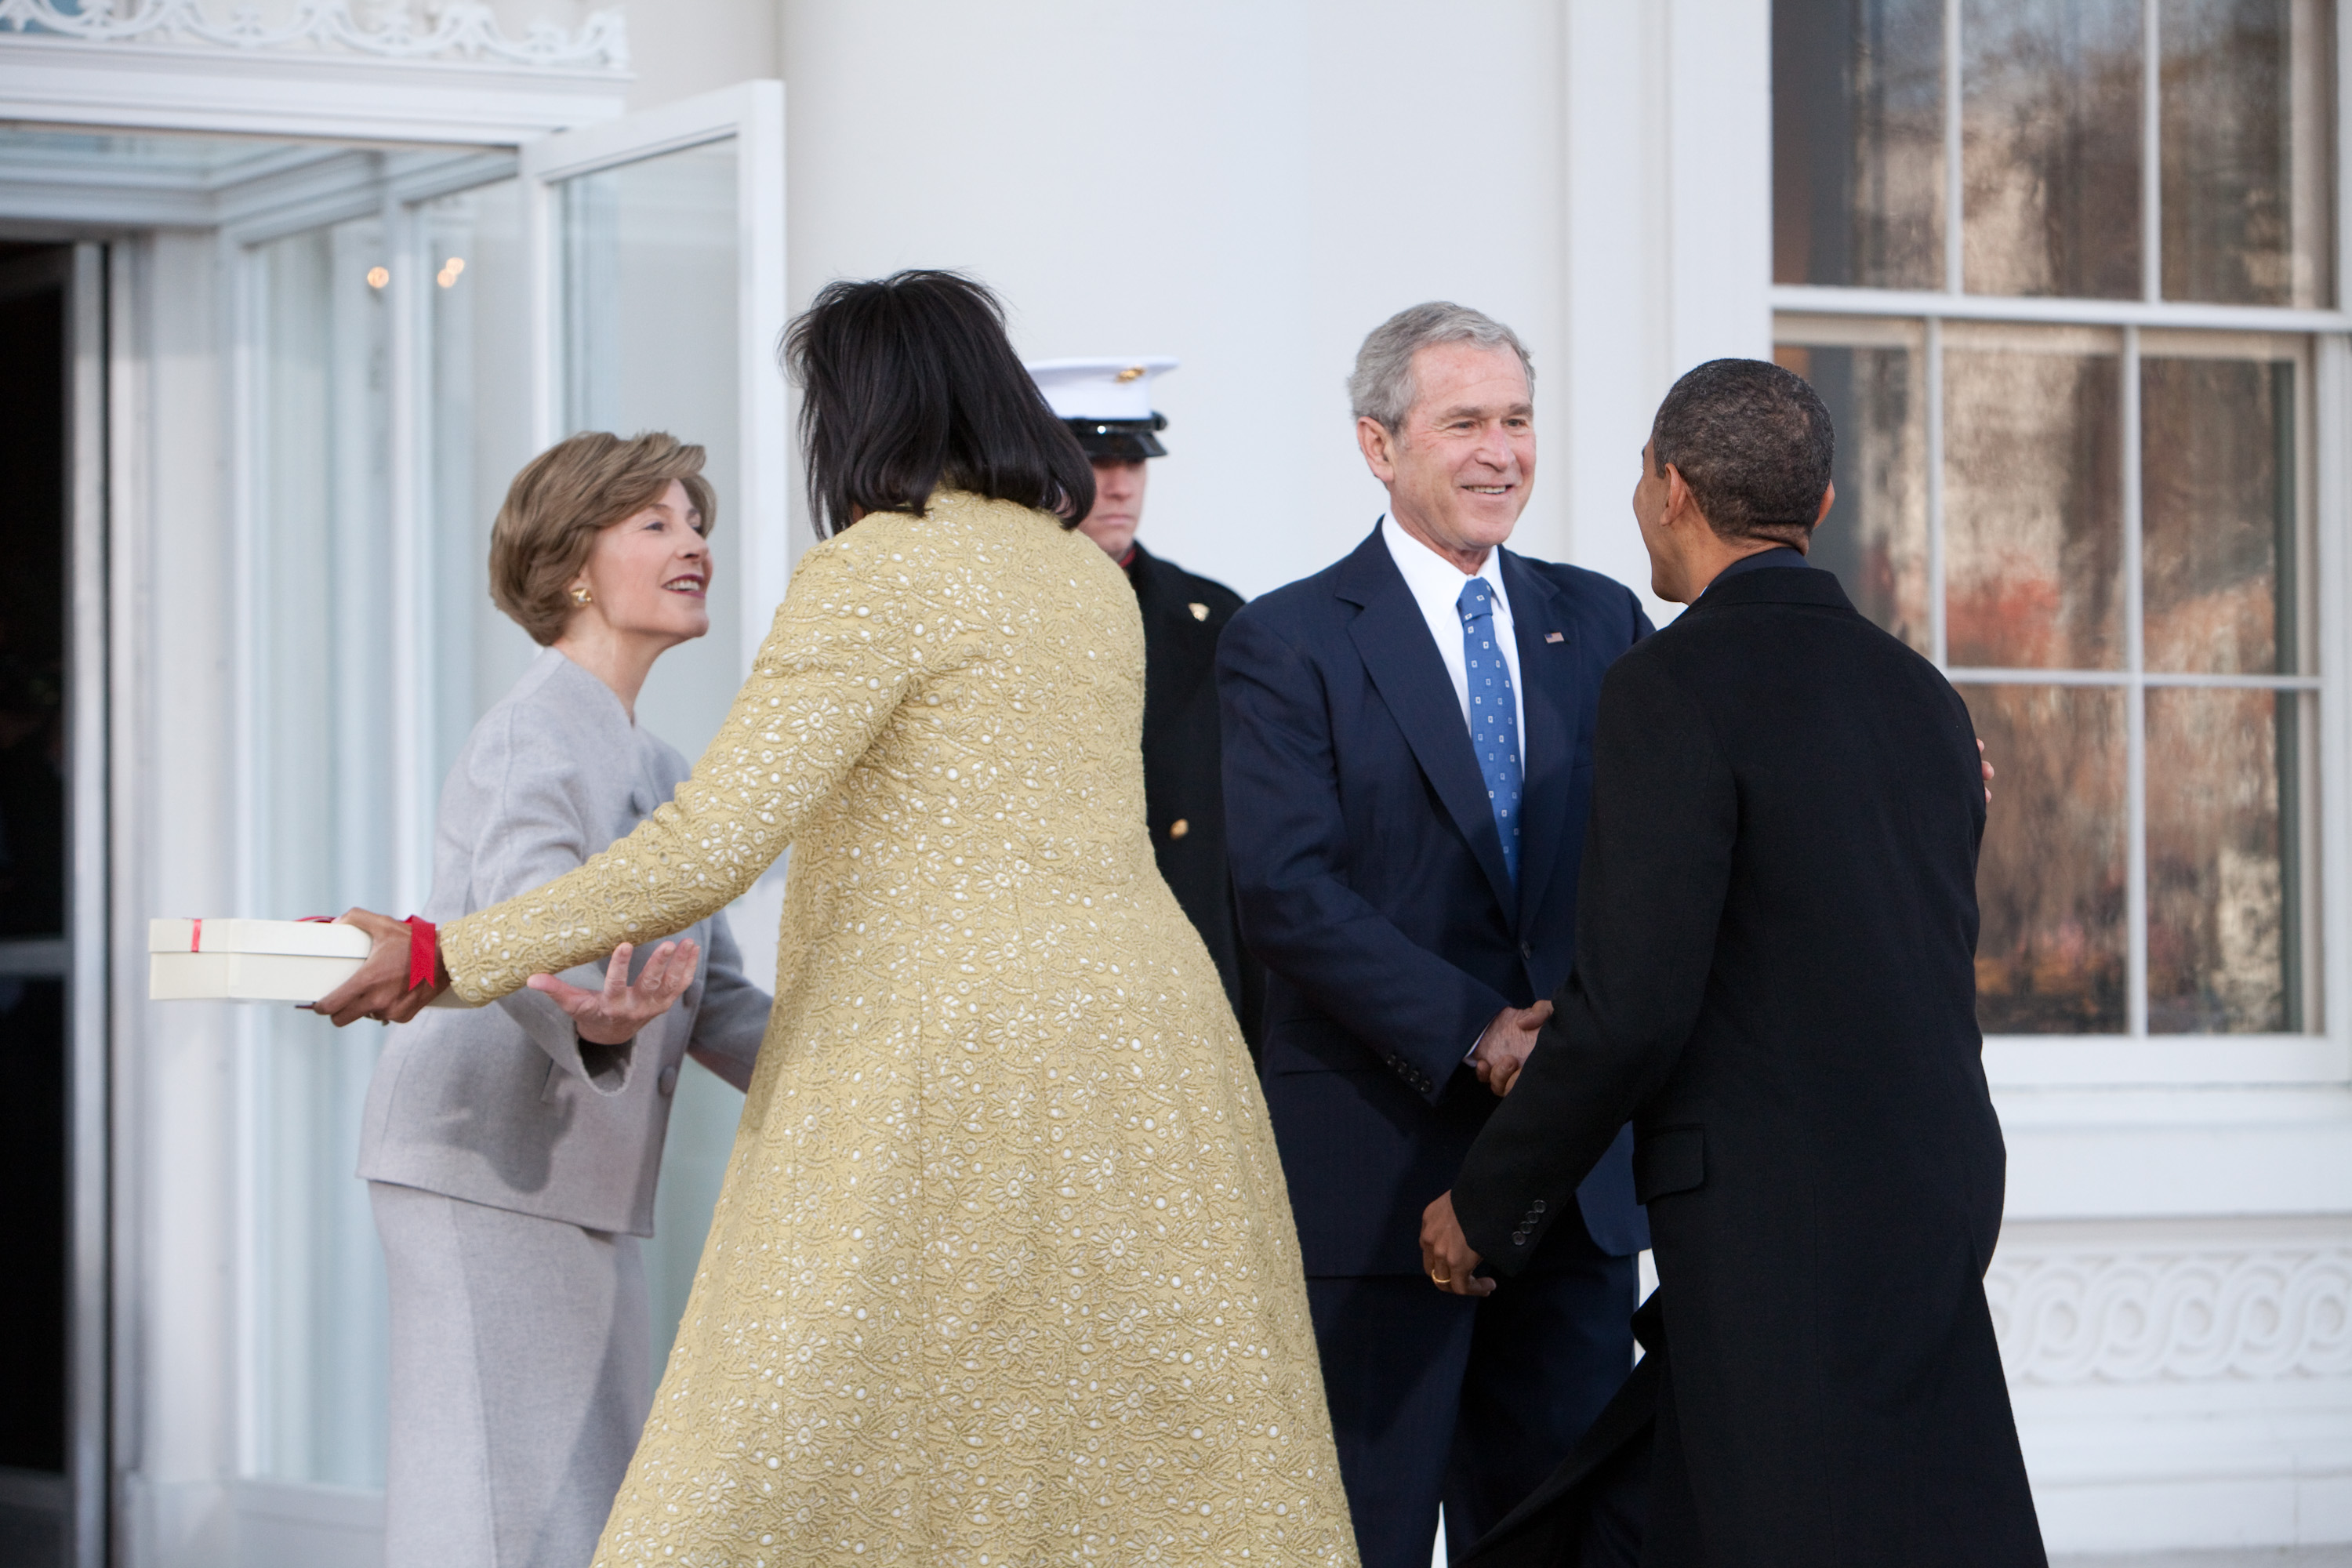 WASHINGTON- JANUARY 20 President George W. Bush and First Lady Laura Bush greet President-elect Barack Obama and Michelle Obama at the North Portico of the White House where the two families will have coffee together before the inaugura